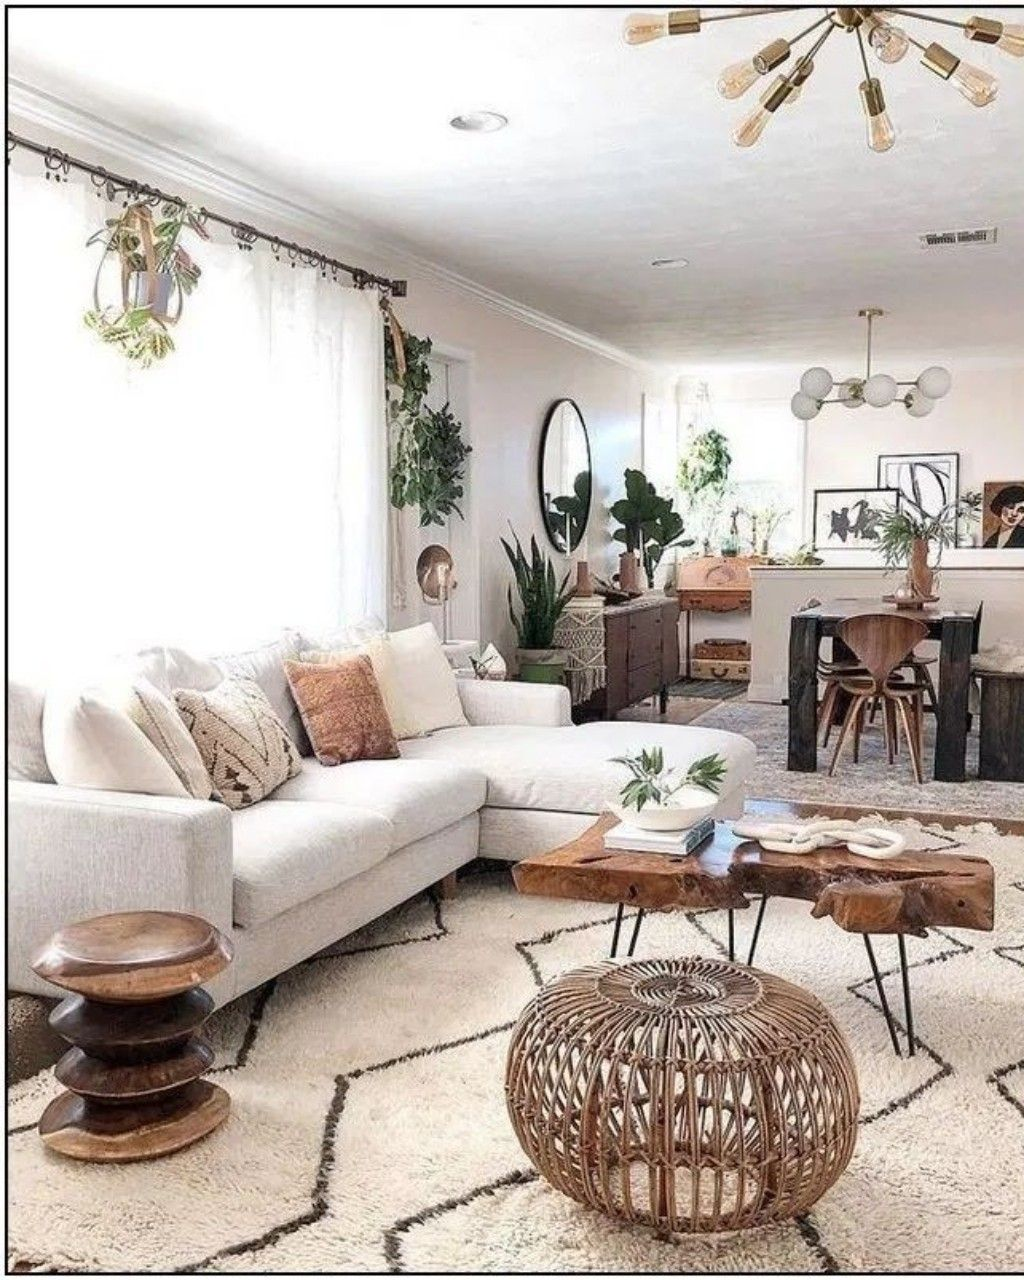 How To Choose A Large Coffee Table In 2020 Living Room